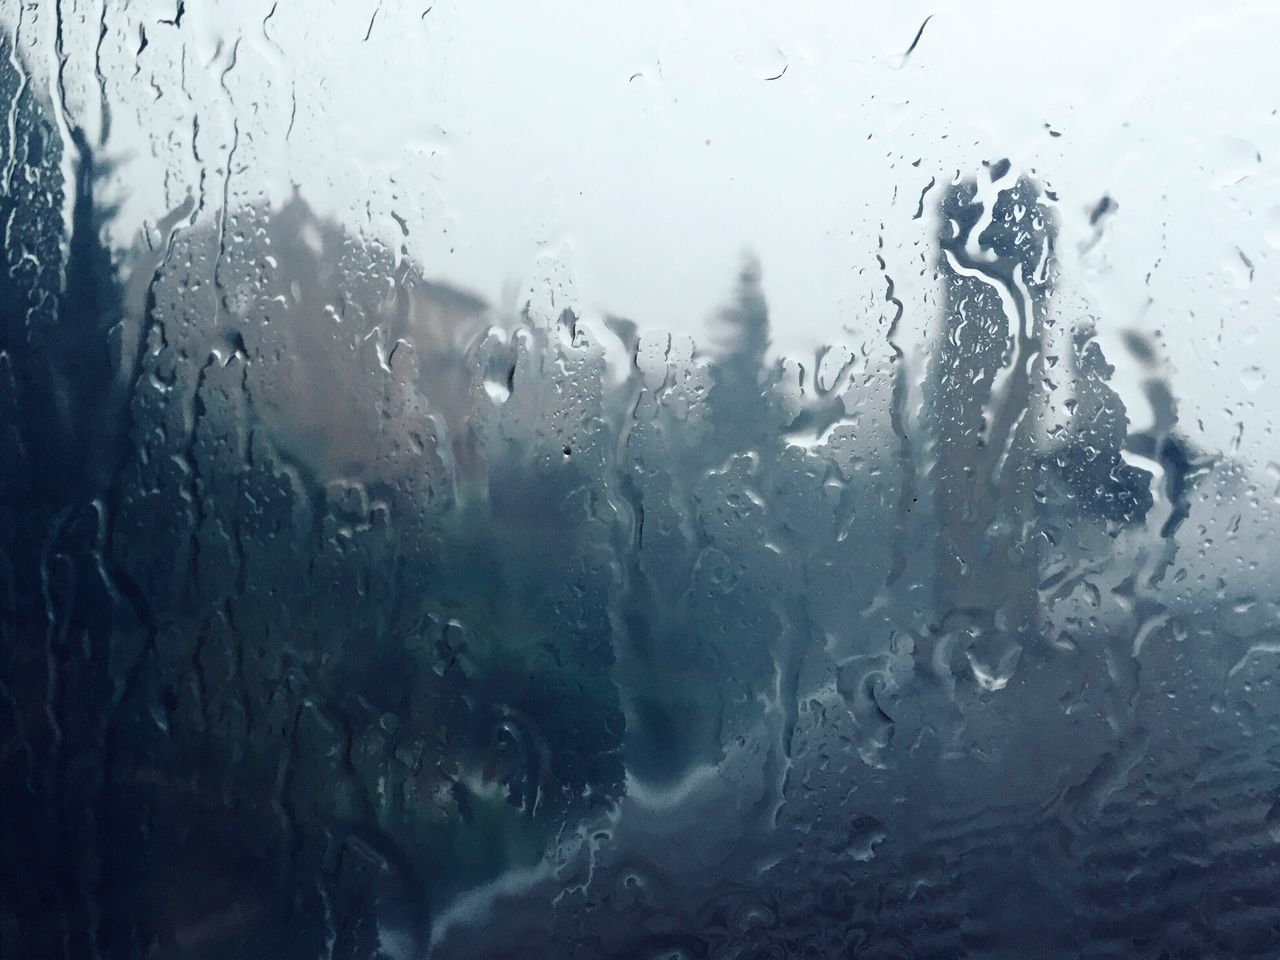 INAUDIBLE WHITE, UNSPOKEN AS A CLOUD; WHILE FROM THE SILENCE, A THIRST OF BREATH [series] by Claudia Ioan Rain Water Weather Window No People Transparent Drop Close-up Day Iphone6 Mobile Photography VSCO IPhoneography Glass Perugia